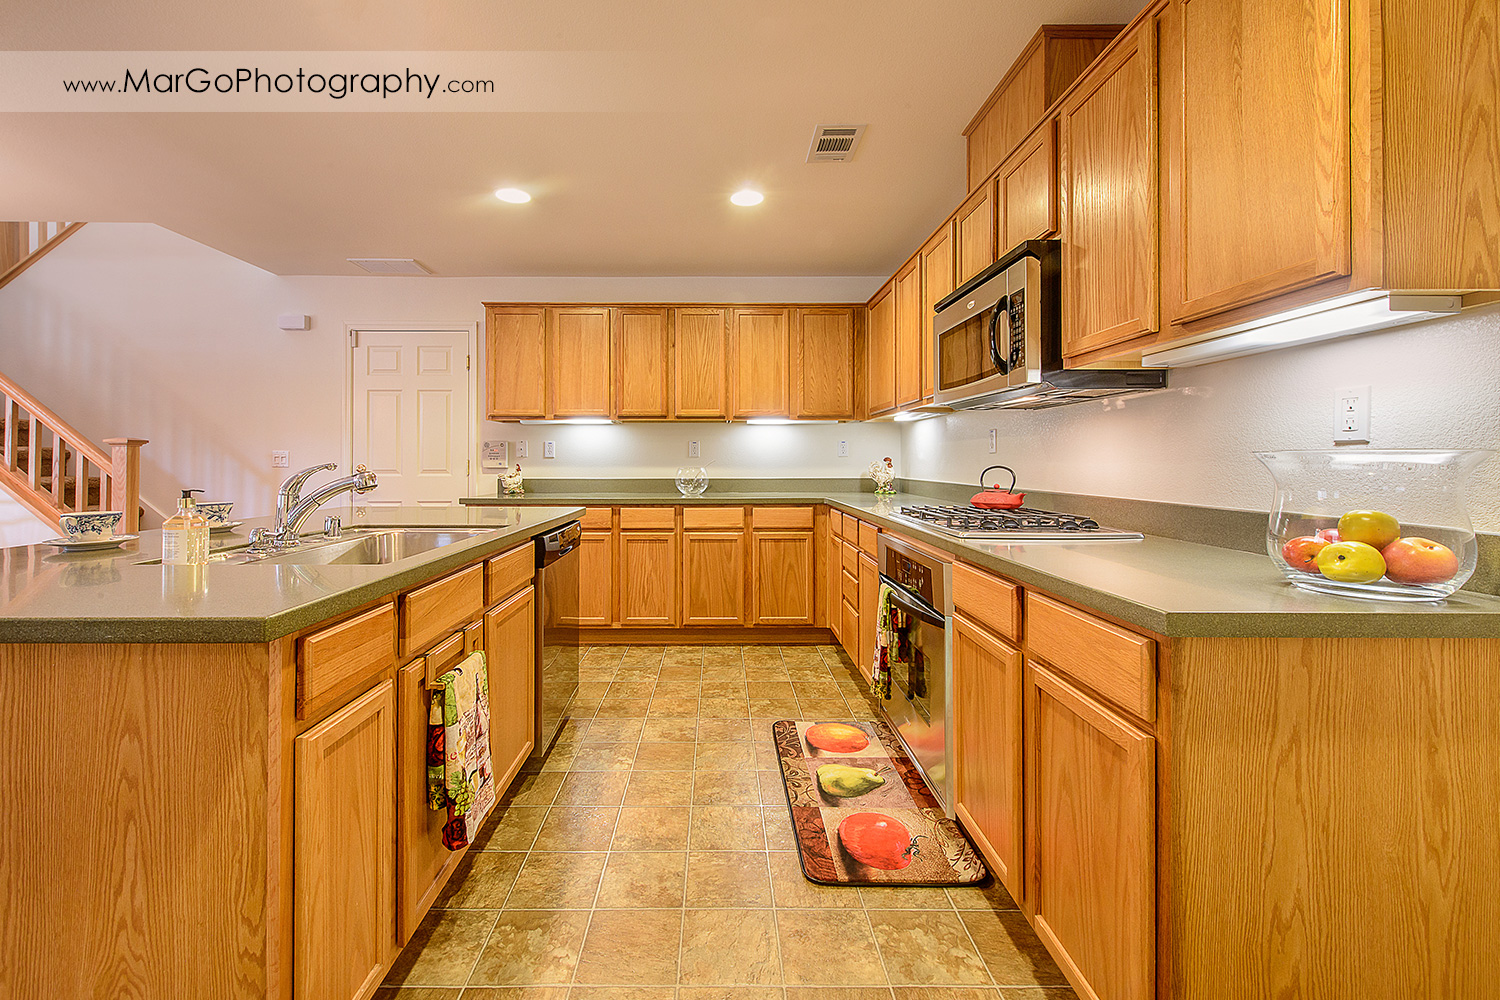 Pittsburd house kitchen with wooden cabinets - real estate photography